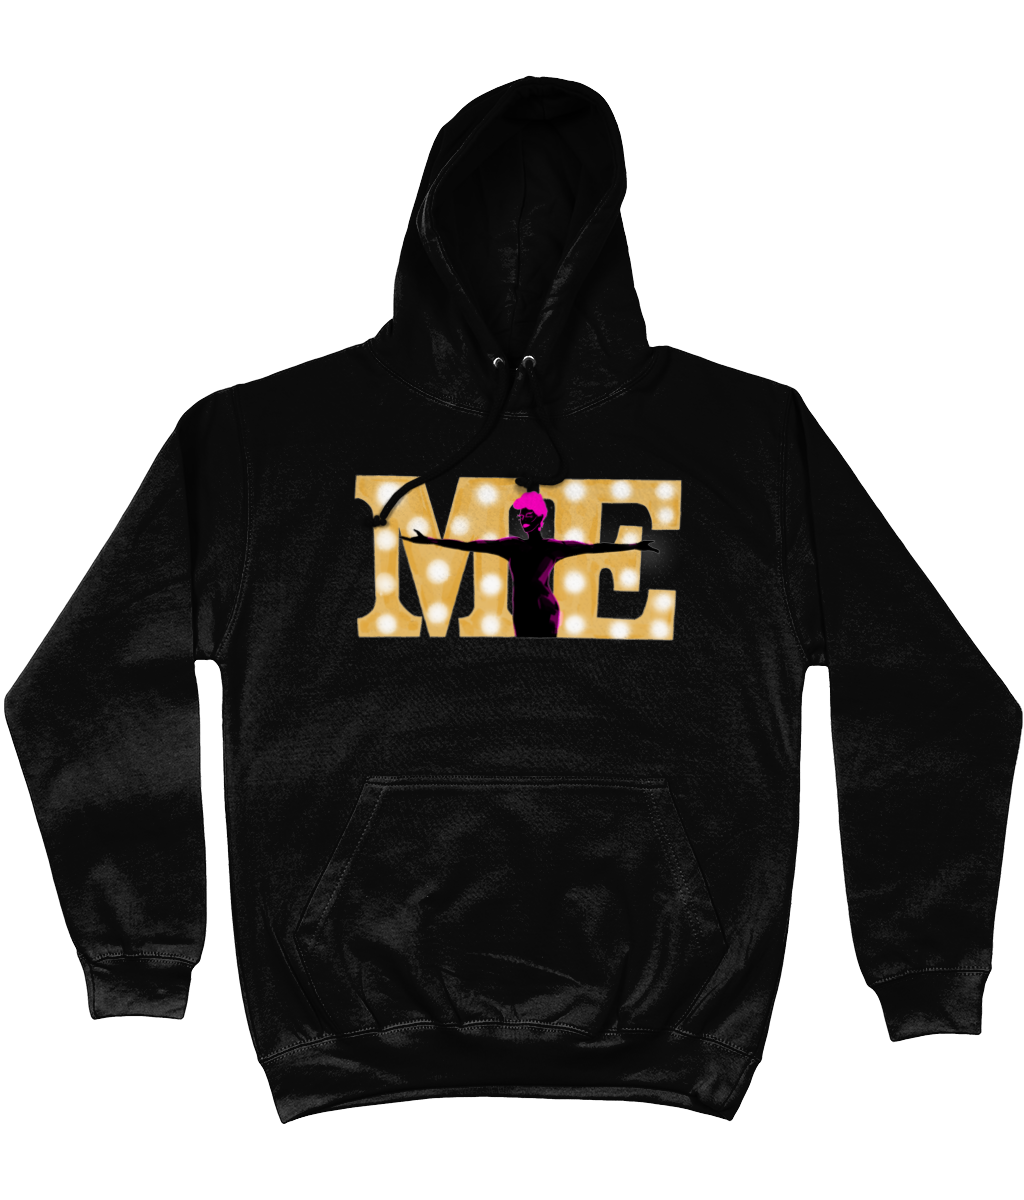 ME - Official Merch - Black Hoodie